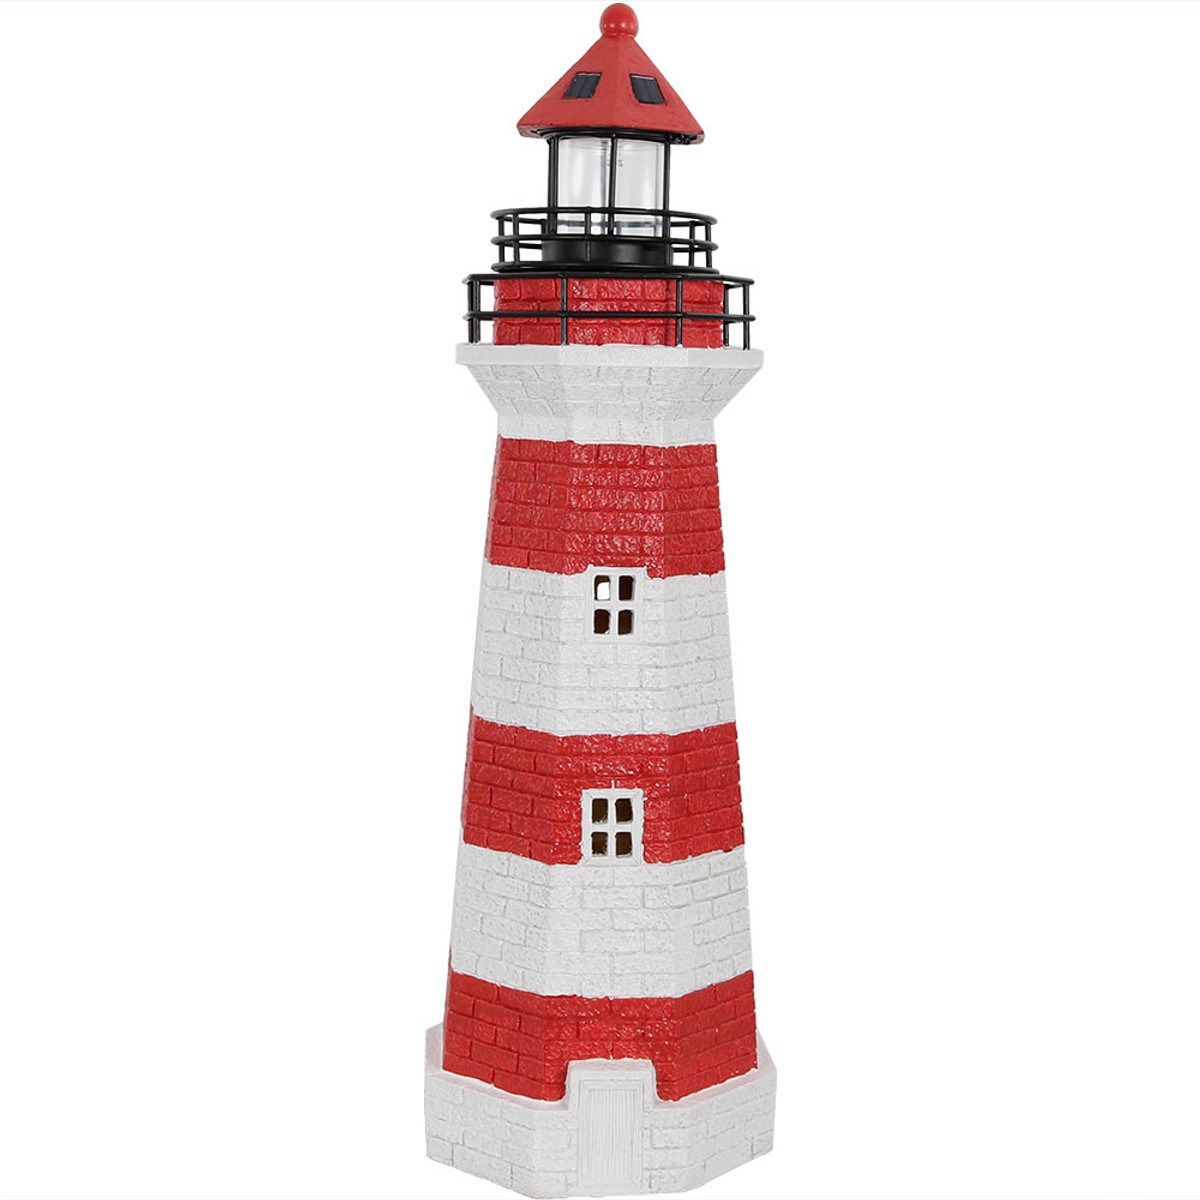 Sunnydaze Solar Striped LED Lighthouse Outdoor Decor, 36 ... on lighthouse plates, lighthouse art, lighthouse urns, lighthouse gifts, lighthouse lighting, lighthouse garden, lighthouse sheds, lighthouse craft projects, lighthouse candles, lighthouse pottery, lighthouse flags, lighthouse home, lighthouse pots, lighthouse furniture, lighthouse sculptures, lighthouse jewelry, lighthouse statues, lighthouse birdhouses, lighthouse books, lighthouse fountains,